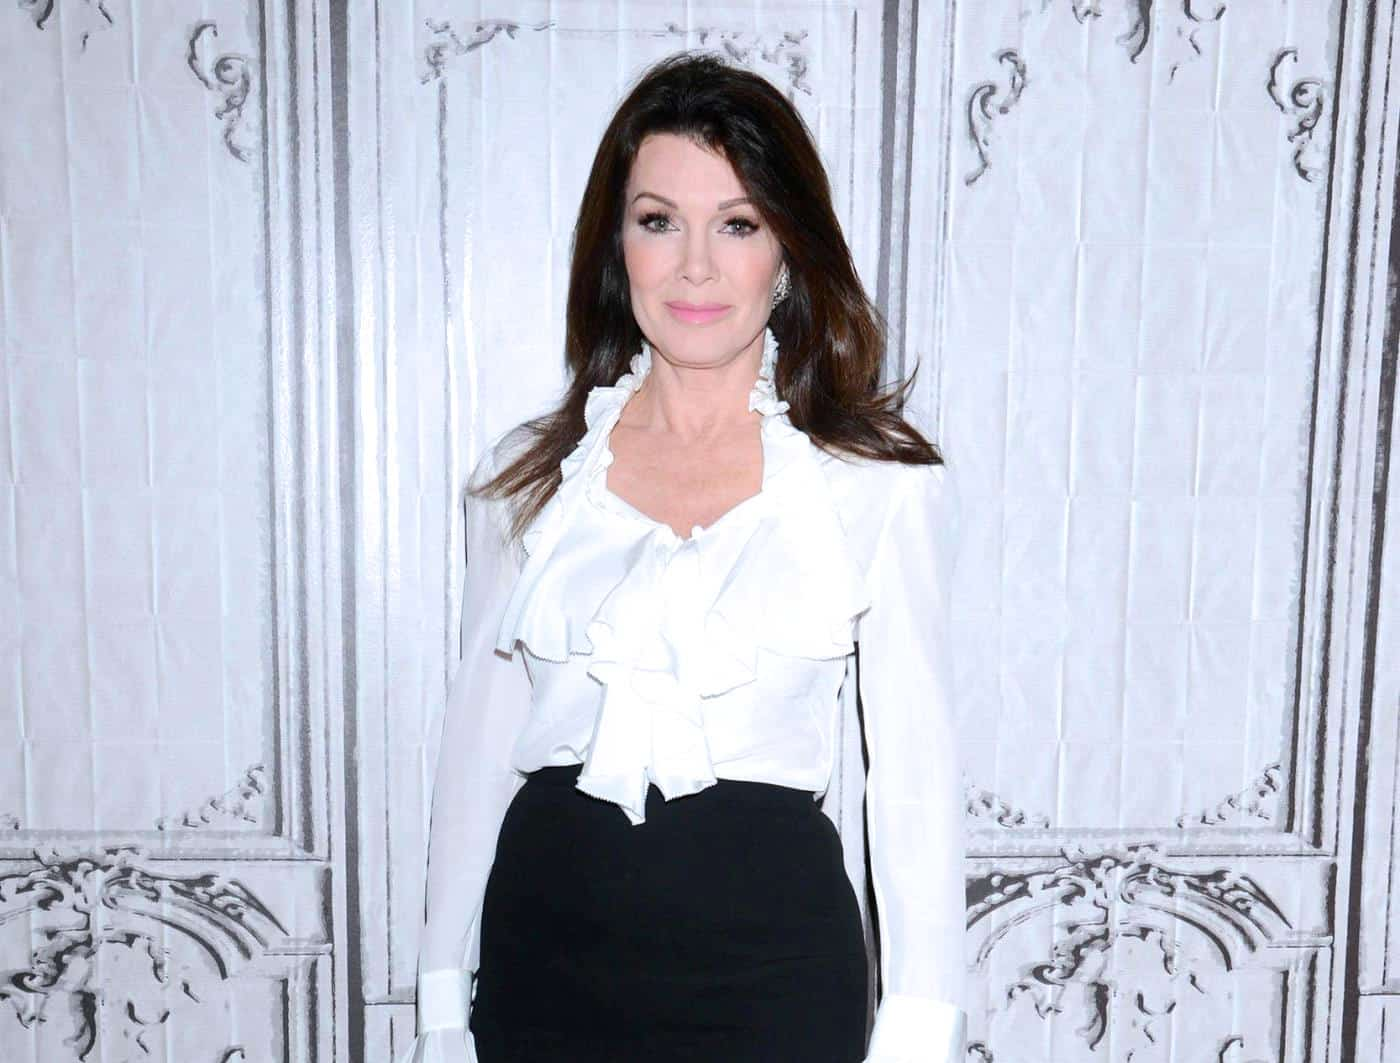 Bravo Network Announces a 'Real Housewives' Spinoff is Coming Soon, Will it Be For Lisa Vanderpump?